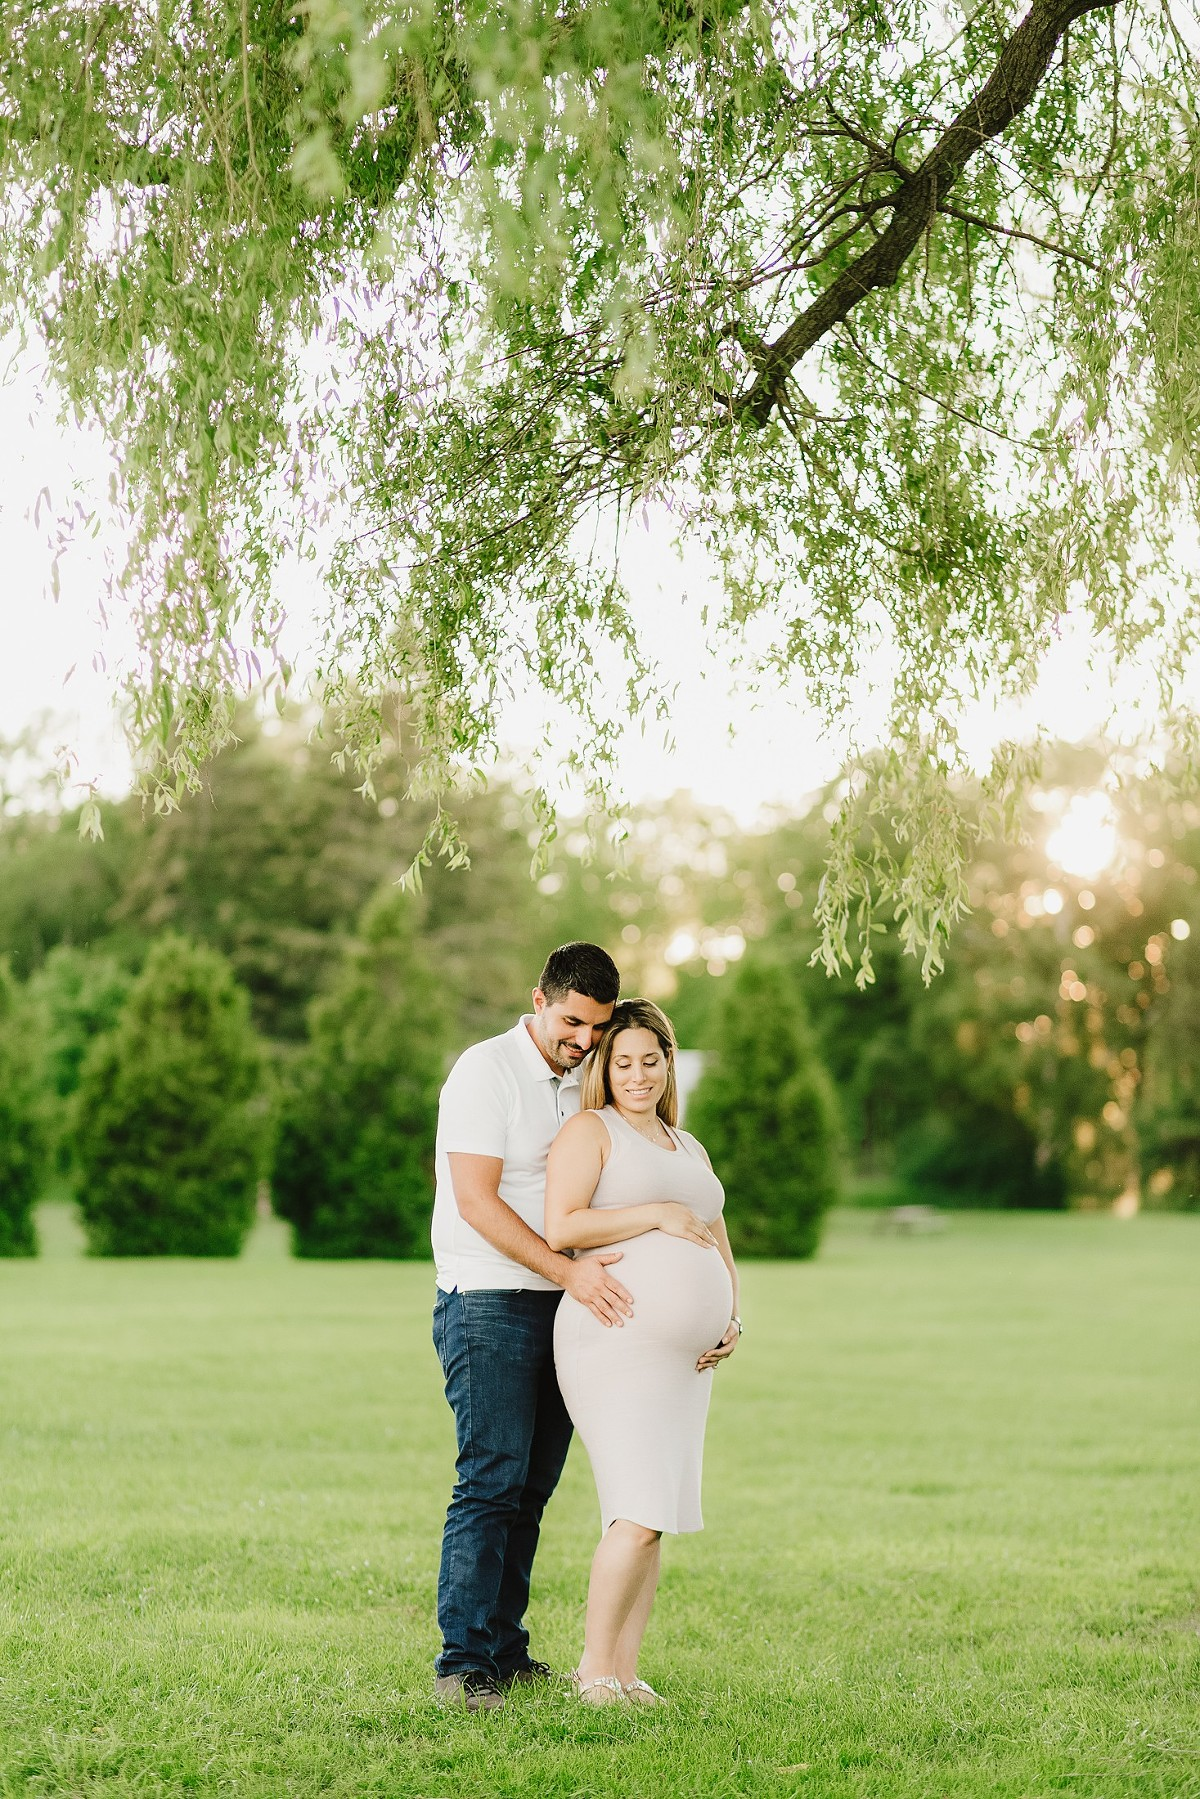 pickering maternity session park